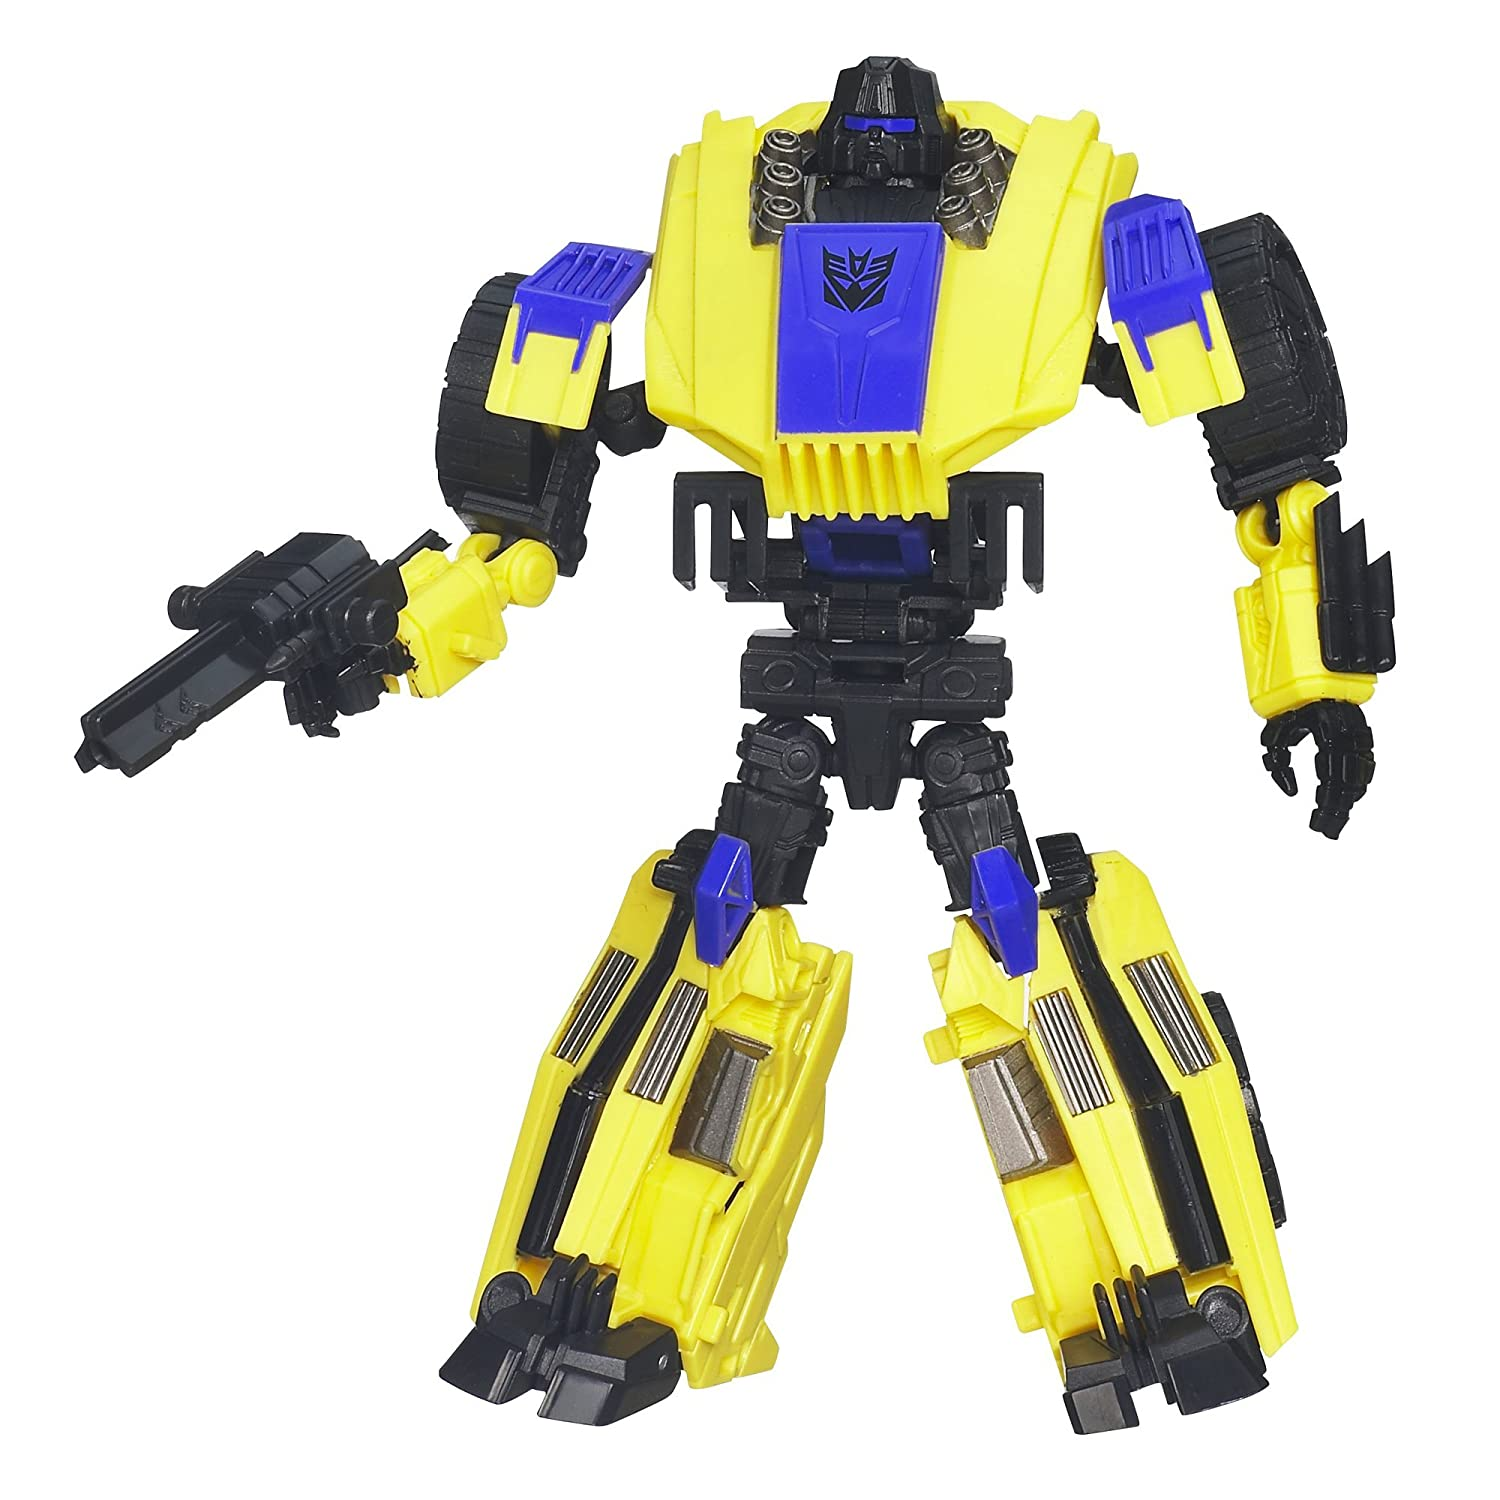 Transformers Generations Deluxe SWINDLE Fall of Cybertron als Geschenk